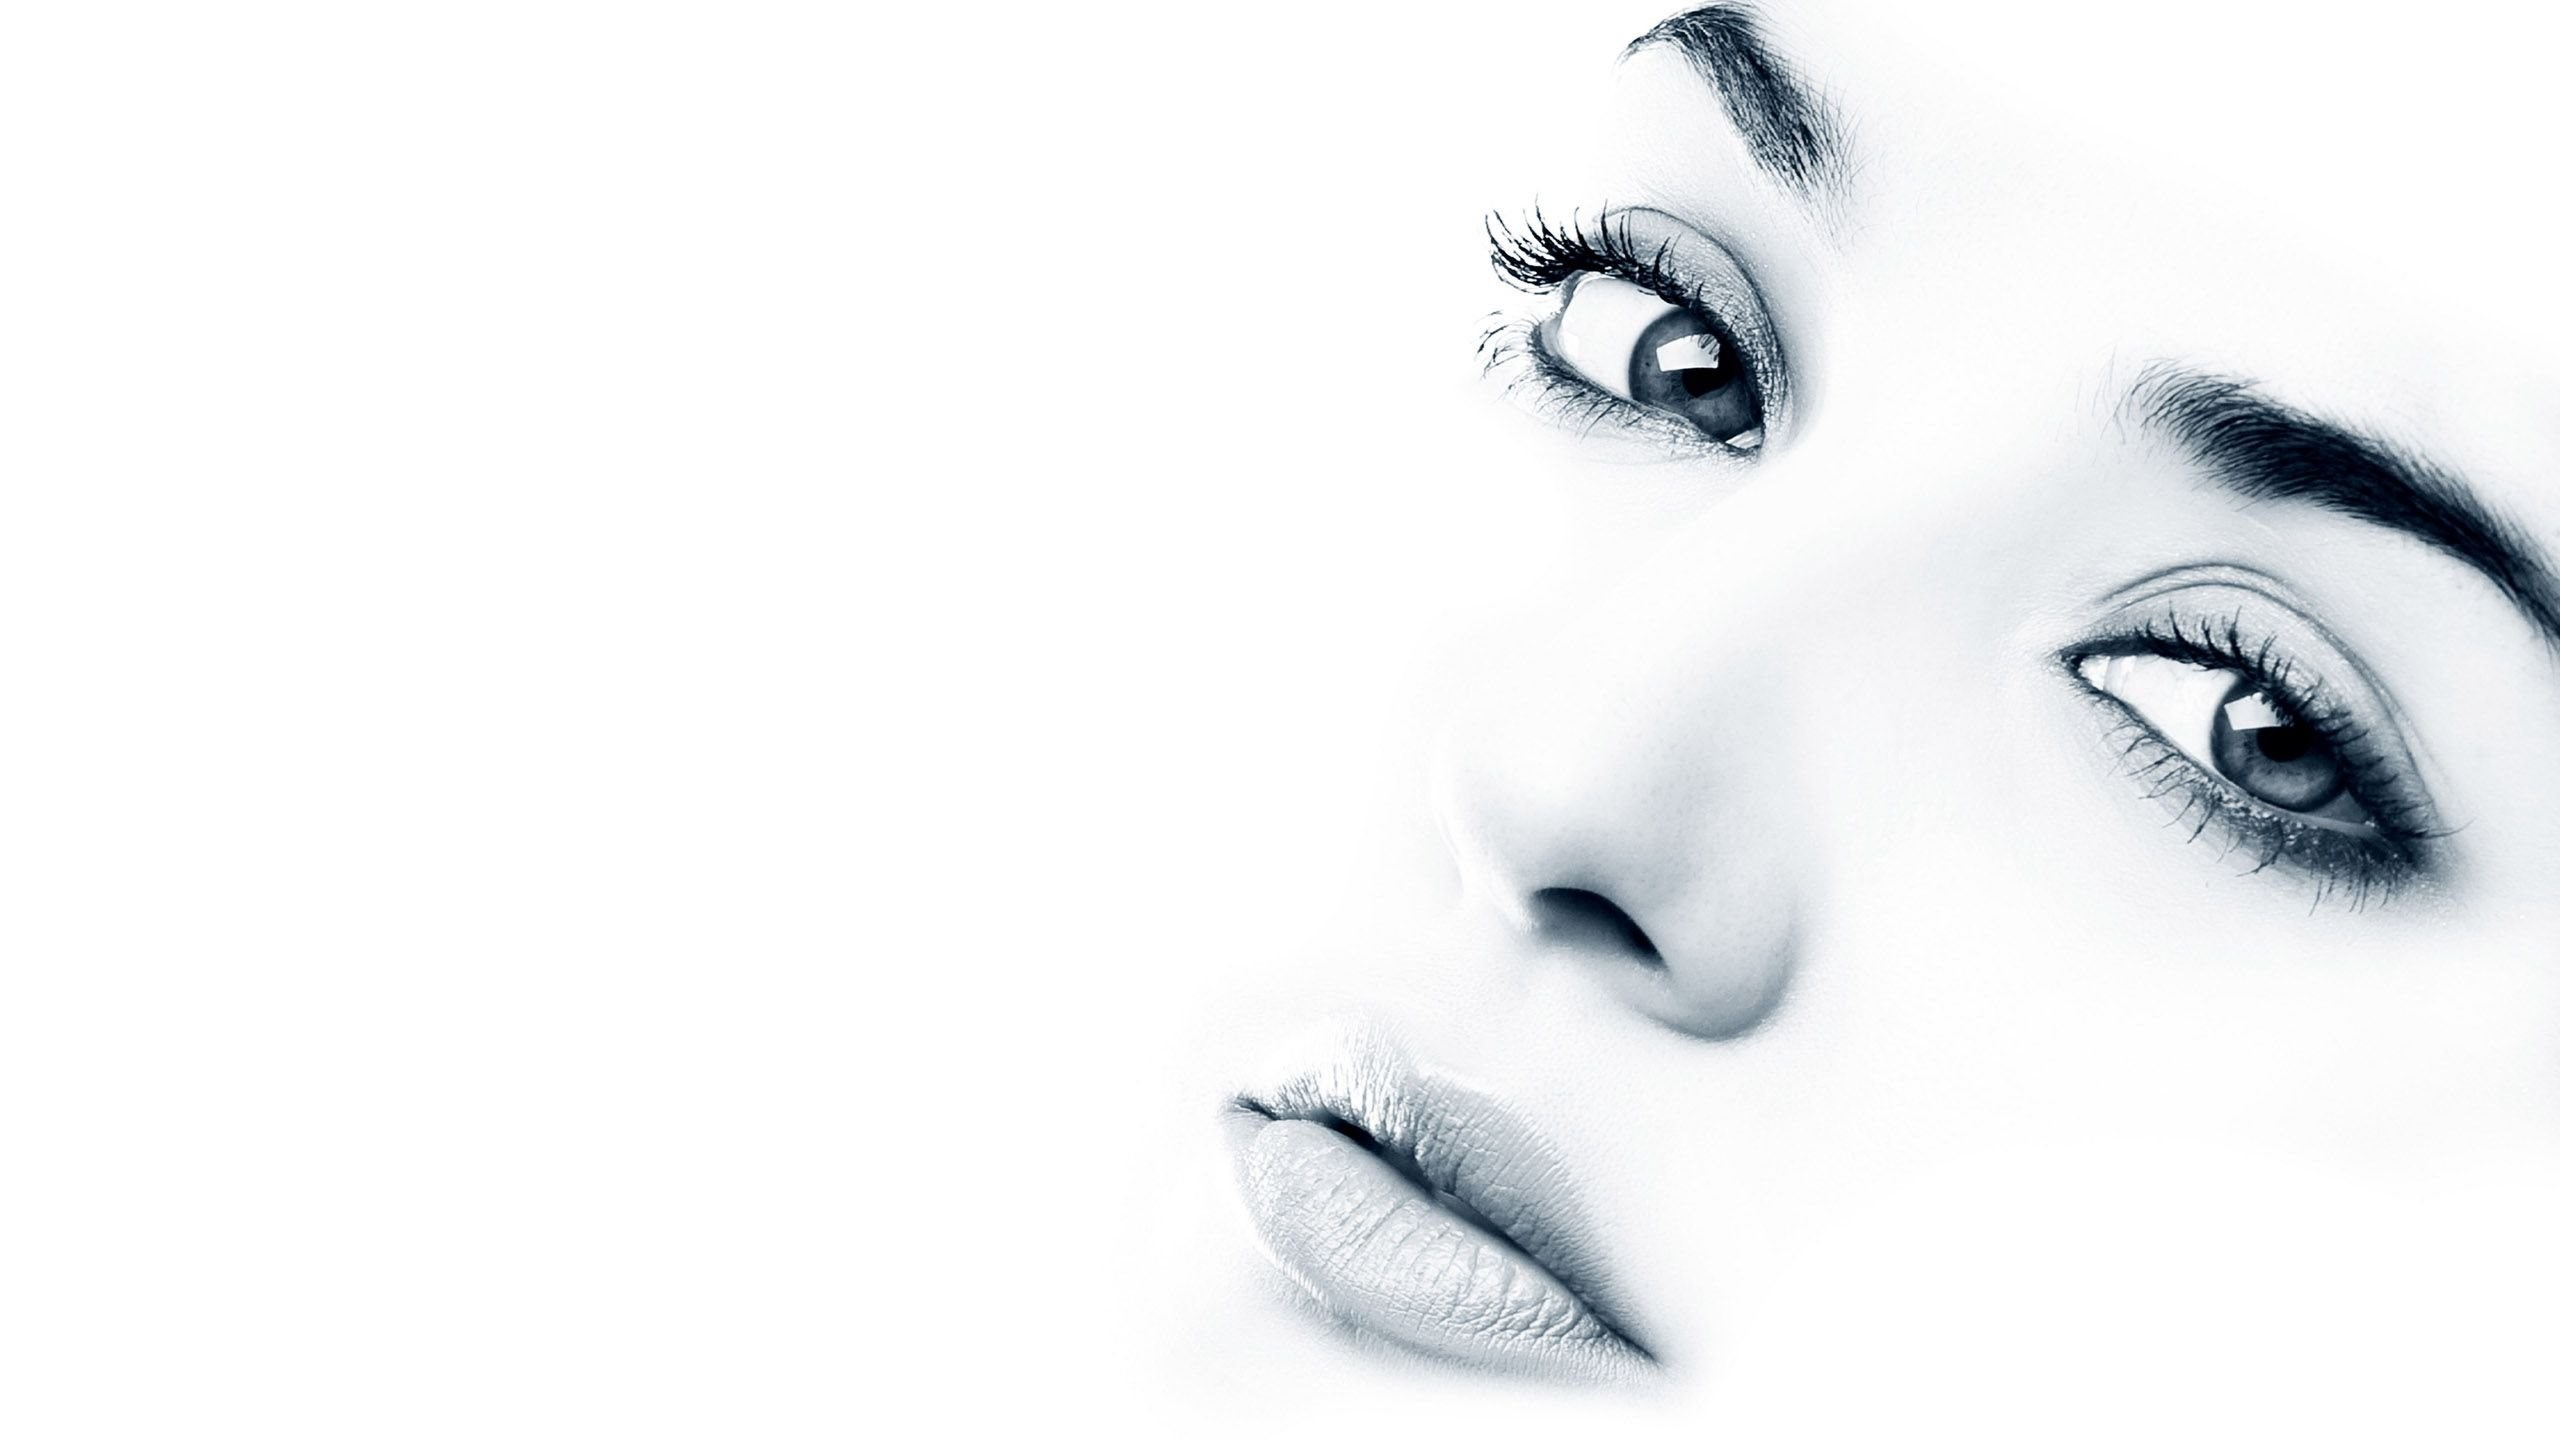 Skin Care Microdermobrasion Desktop Background